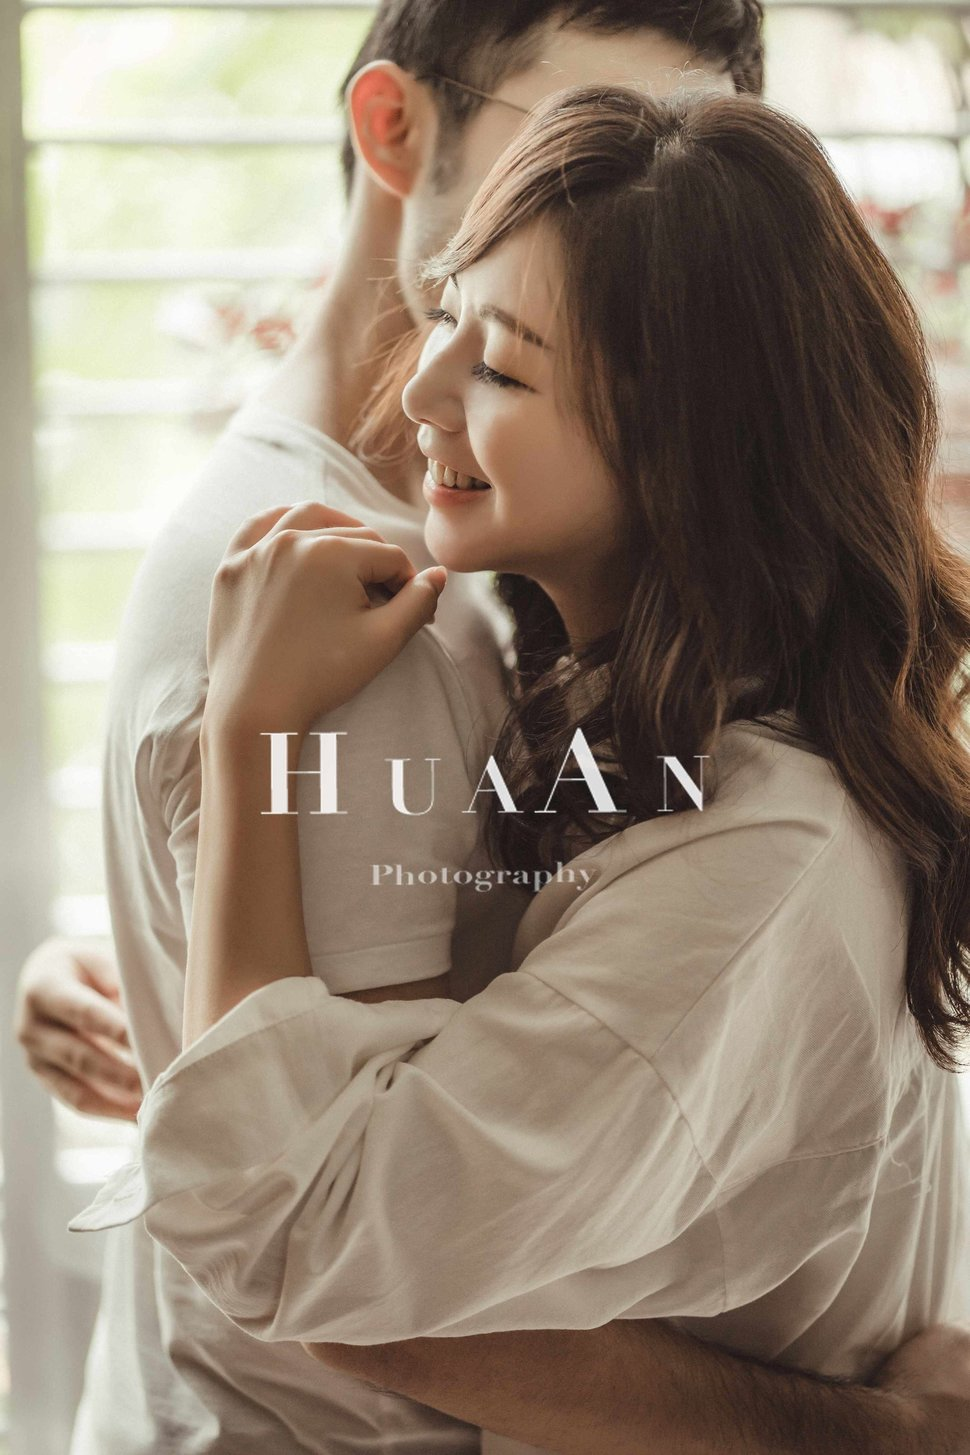 DSC01474 - Huaan Photography《結婚吧》